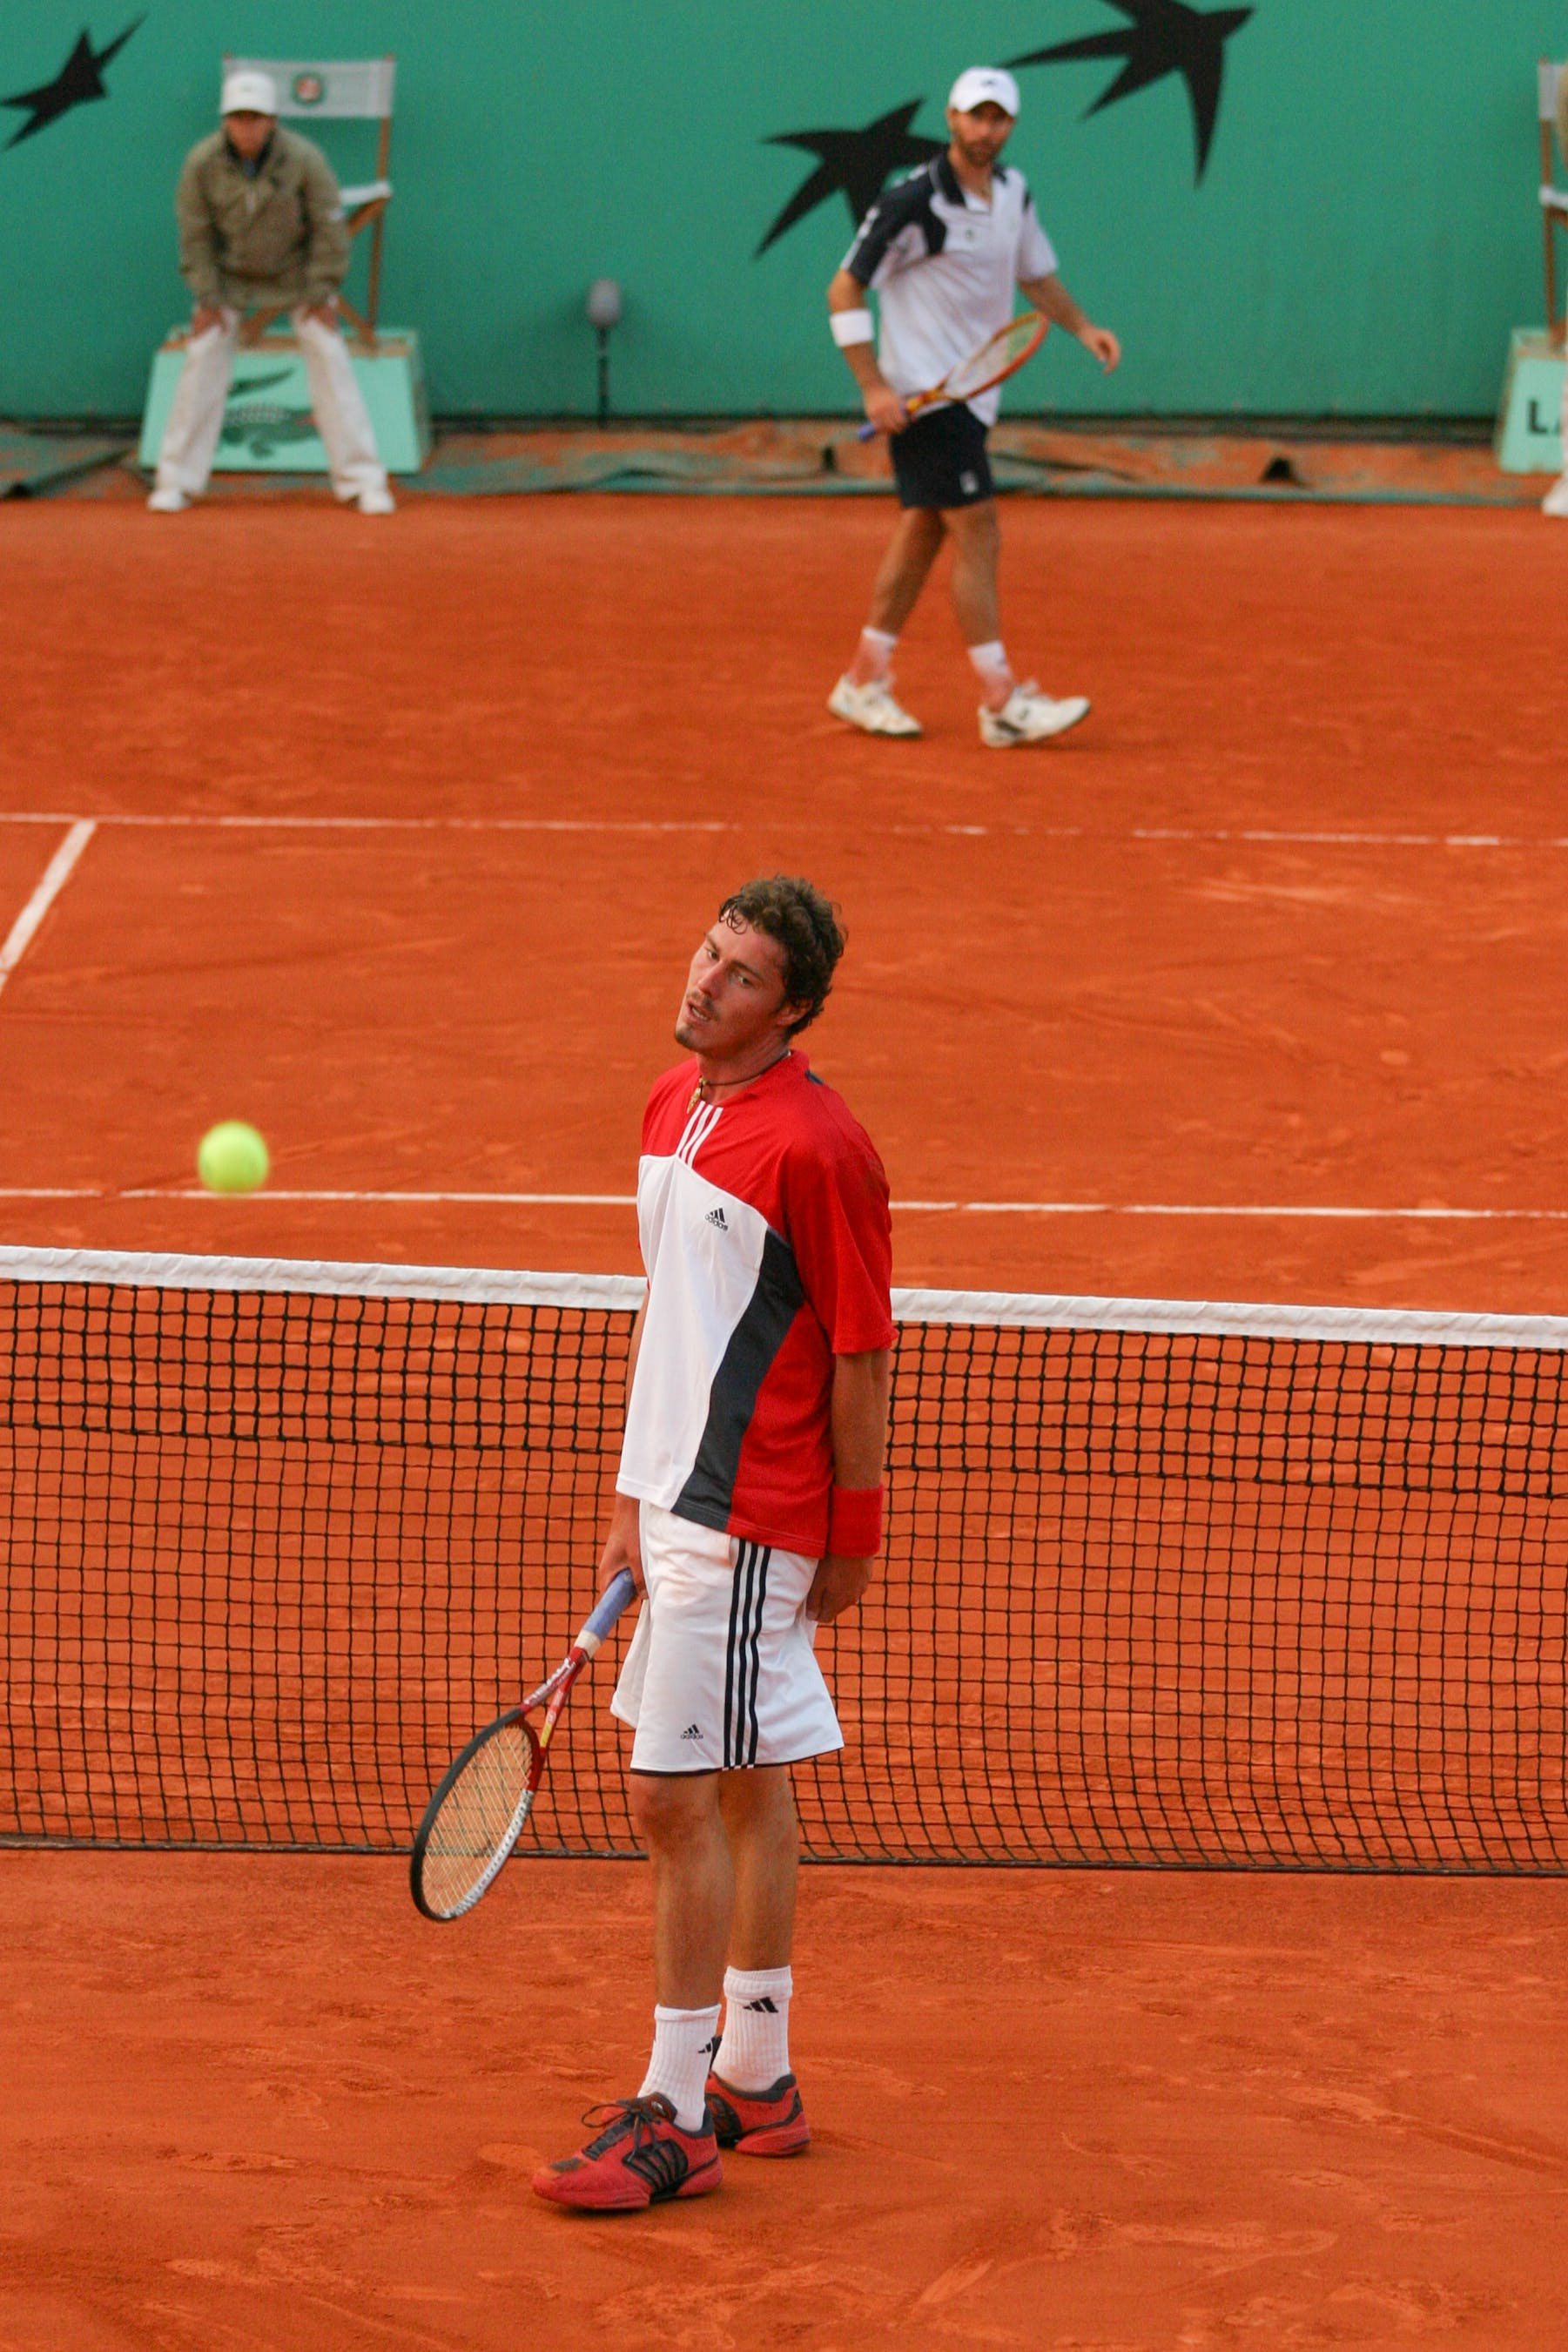 Safin against Mantilla during second round at RG 2004